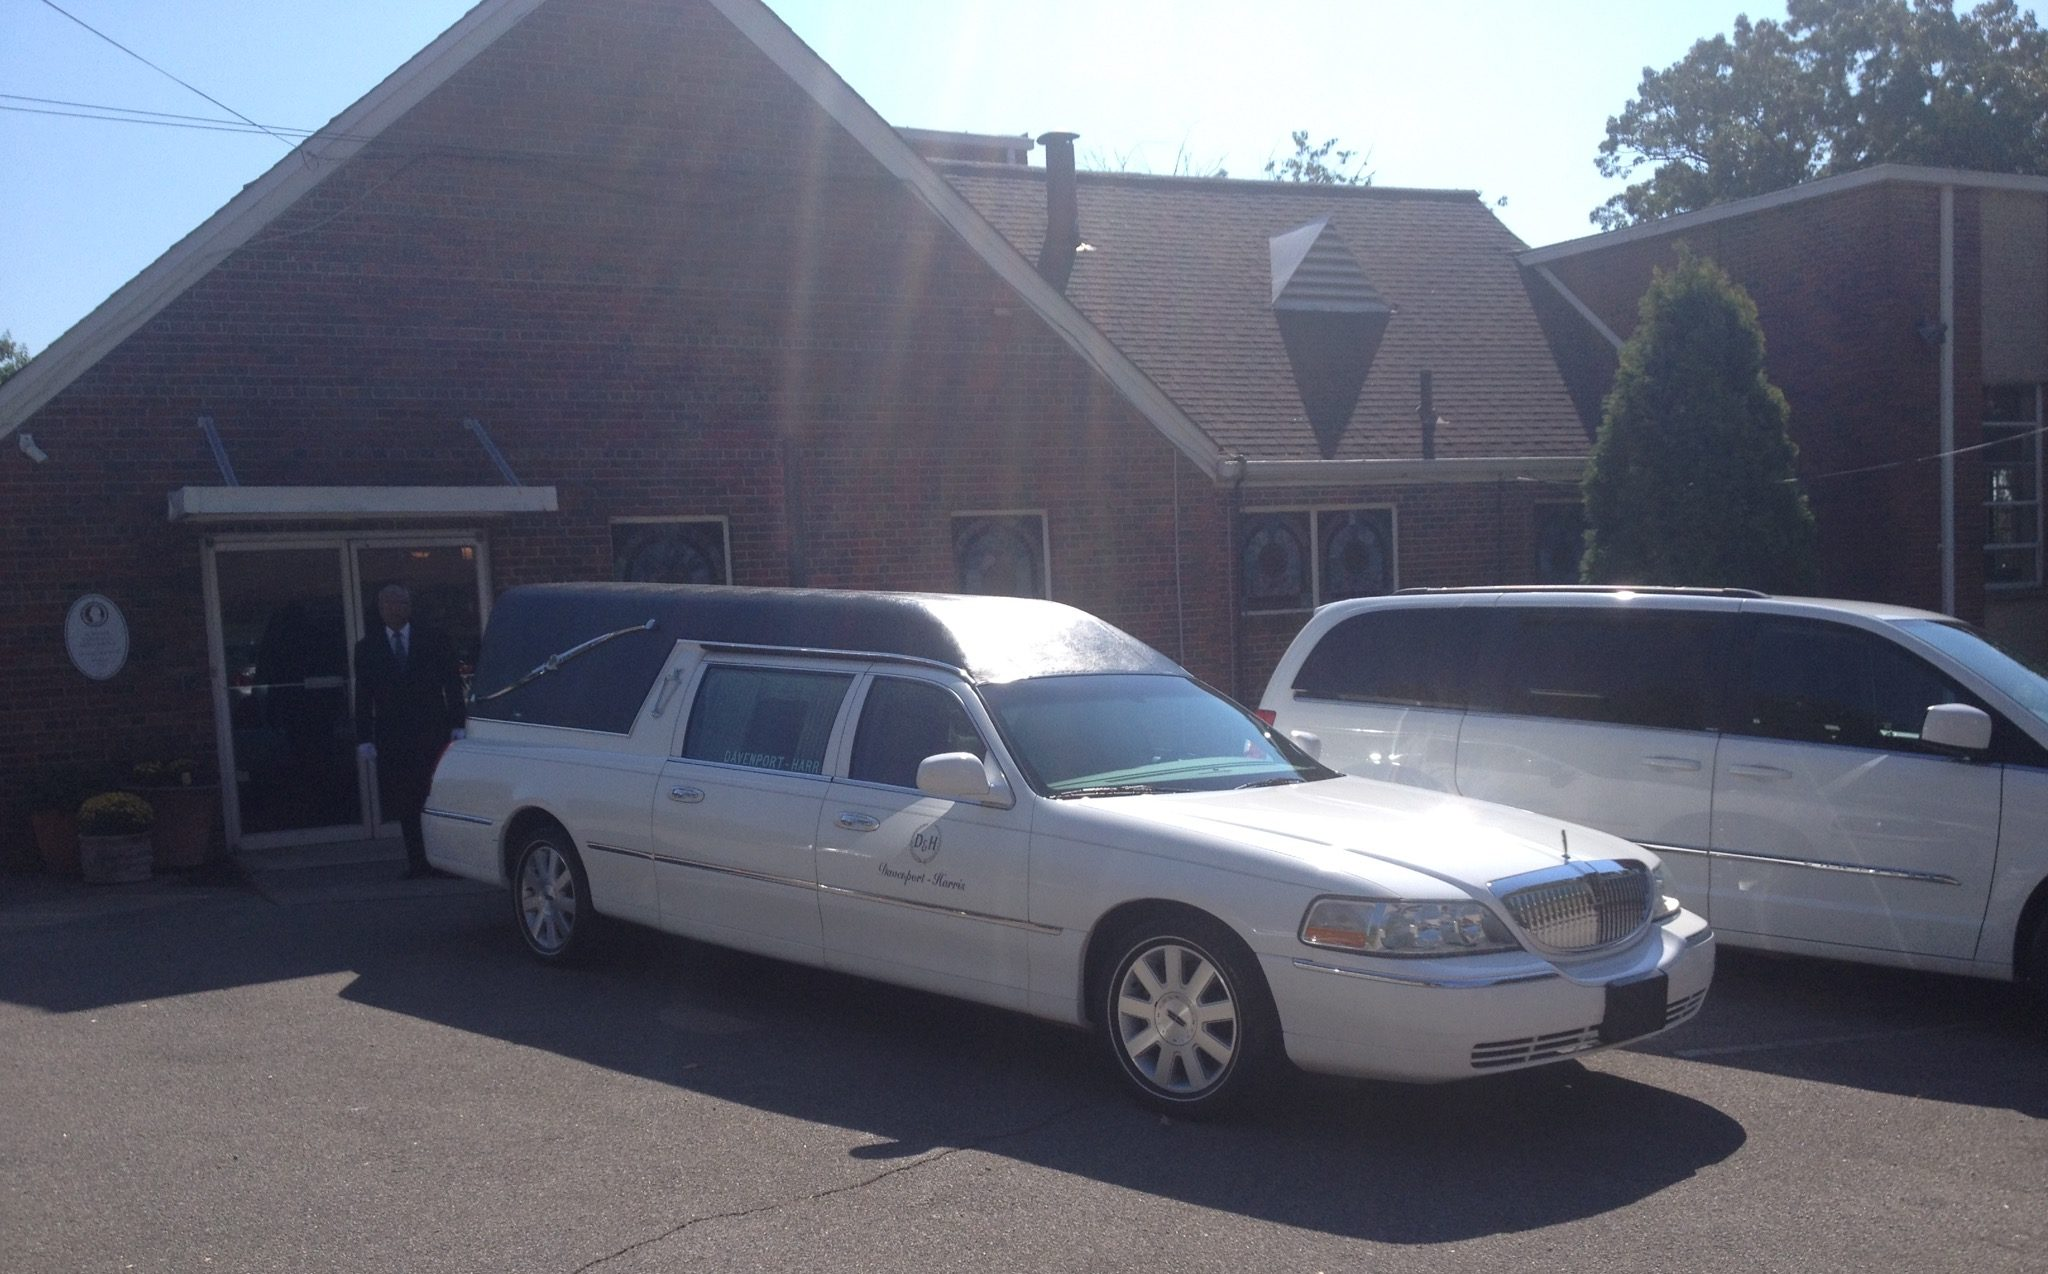 The funeral for Helen M. Lewis, held at First Congregational Christian Church. (Monique Jones, The Birmingham Times)